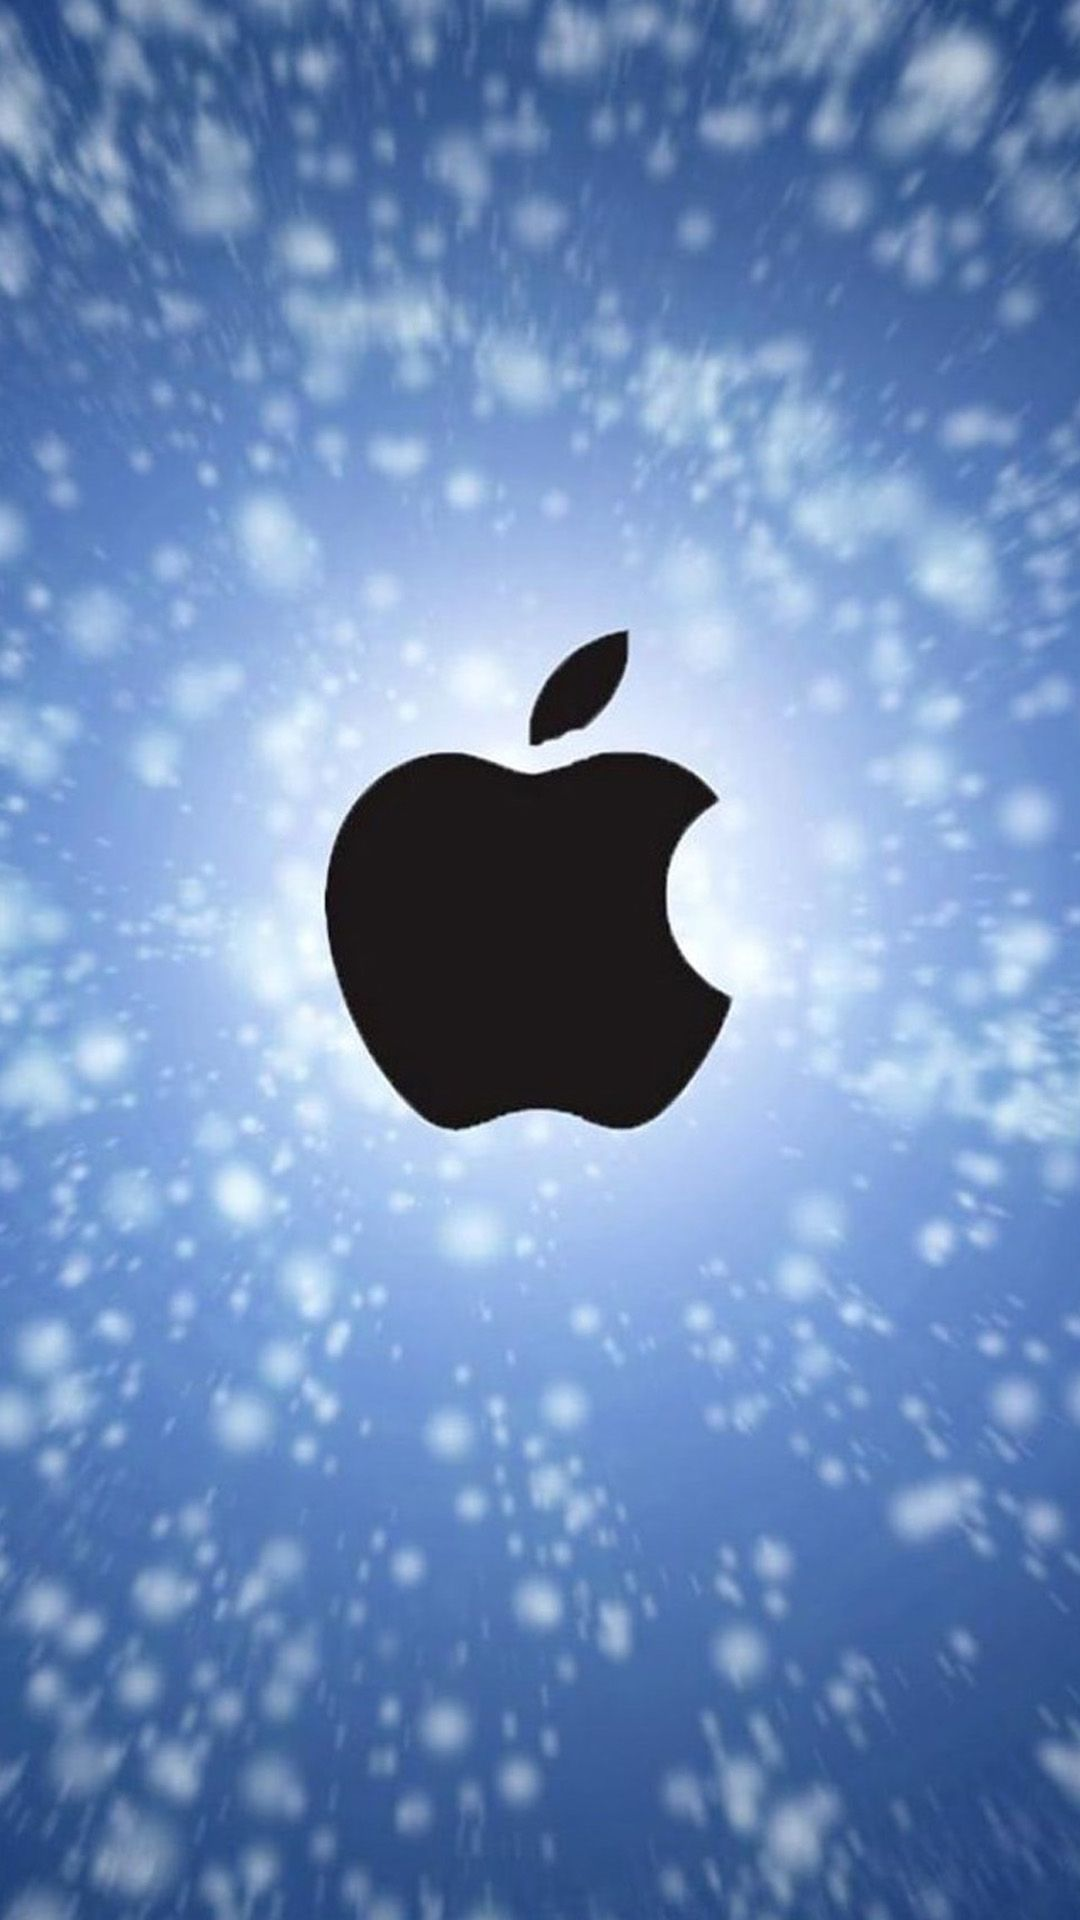 Apple Wallpapers For iPhone 6 Plus 18 Iphone dynamic